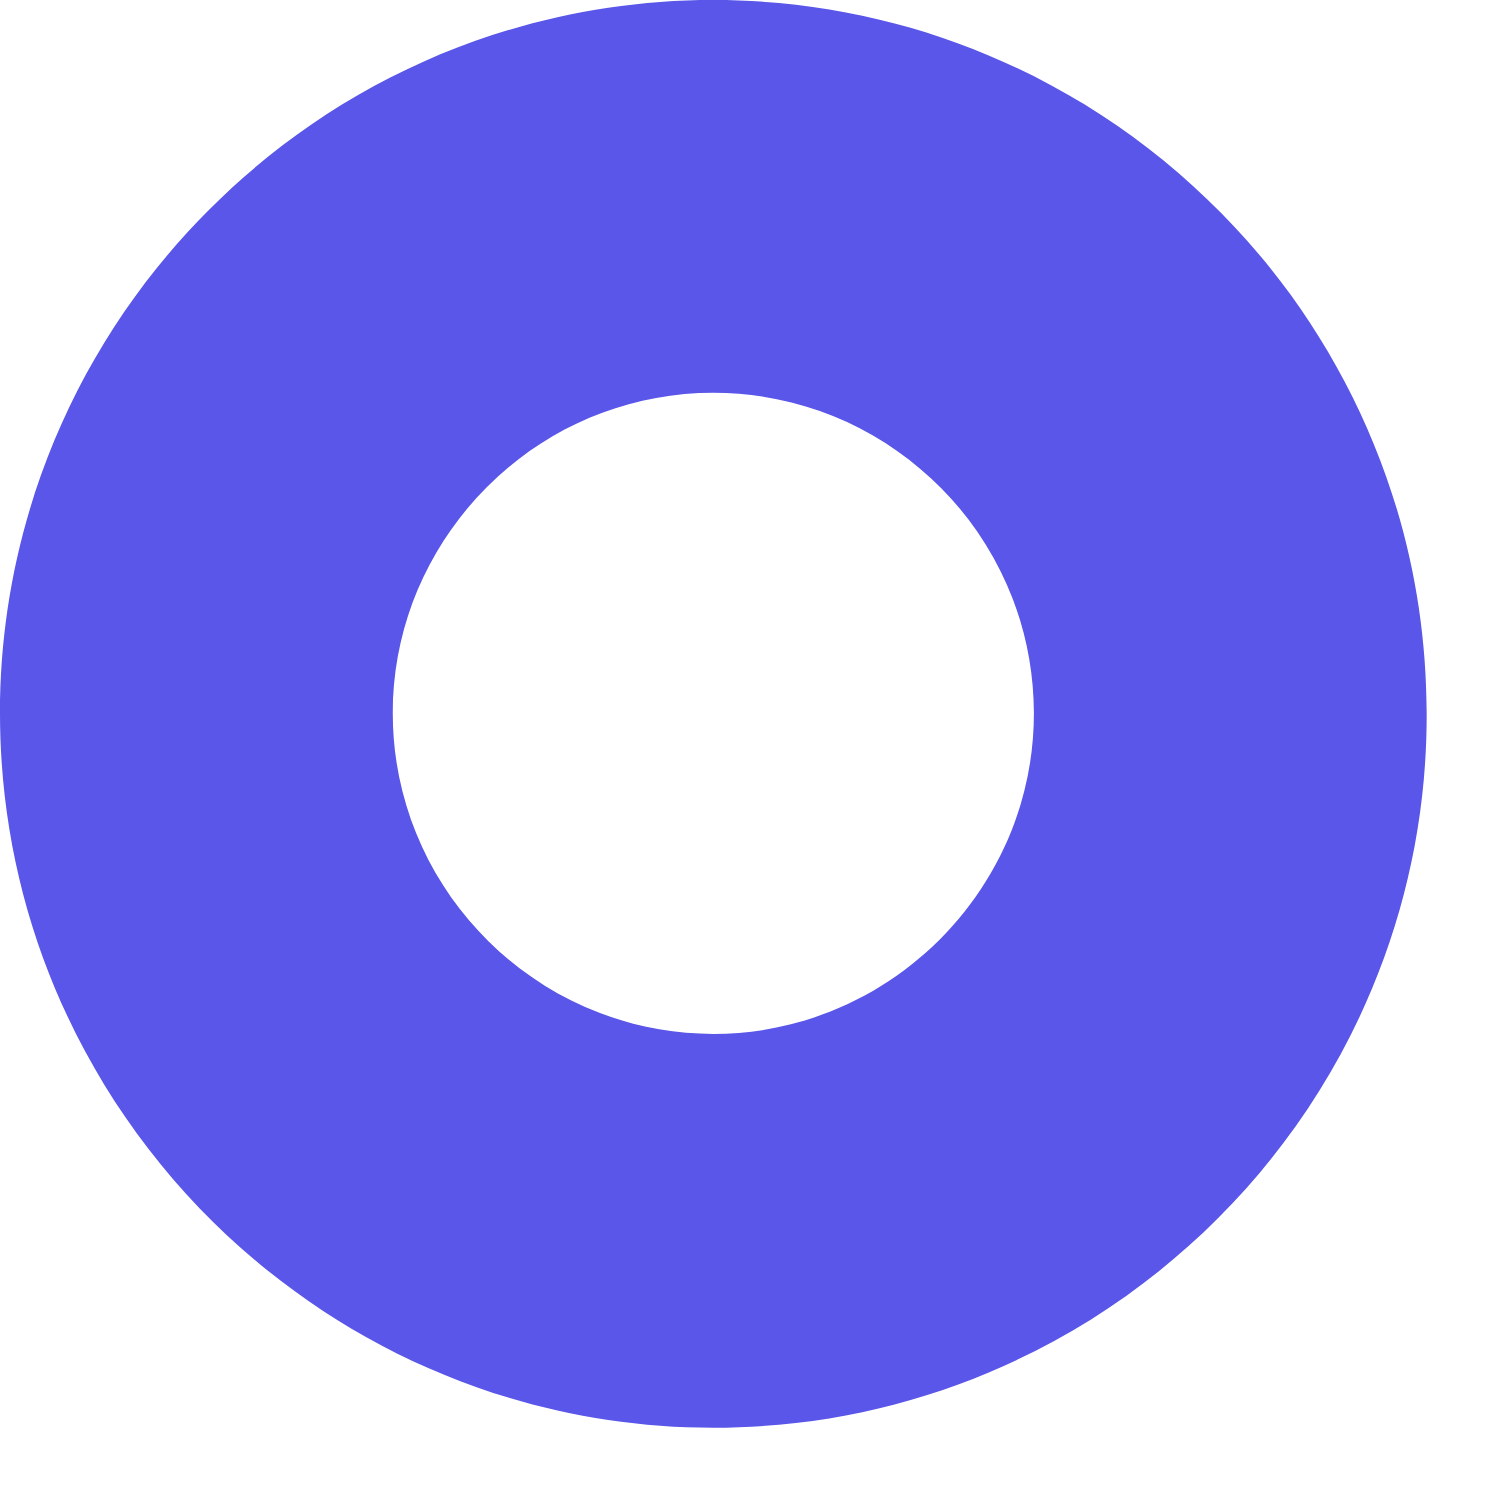 blue decorative circle